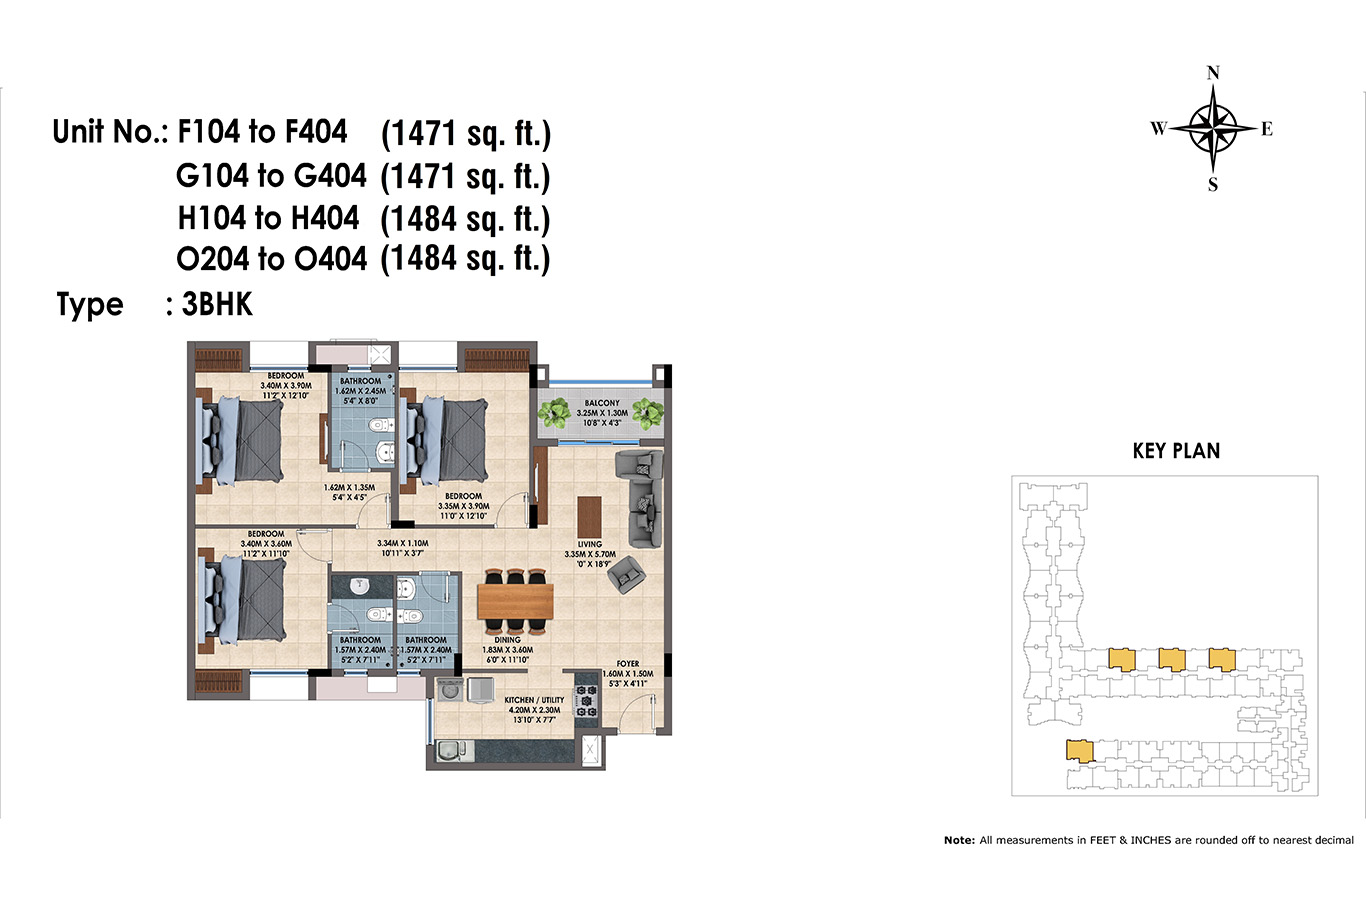 F,G,H 104 to 404 & O 204 to 404(3BHK)